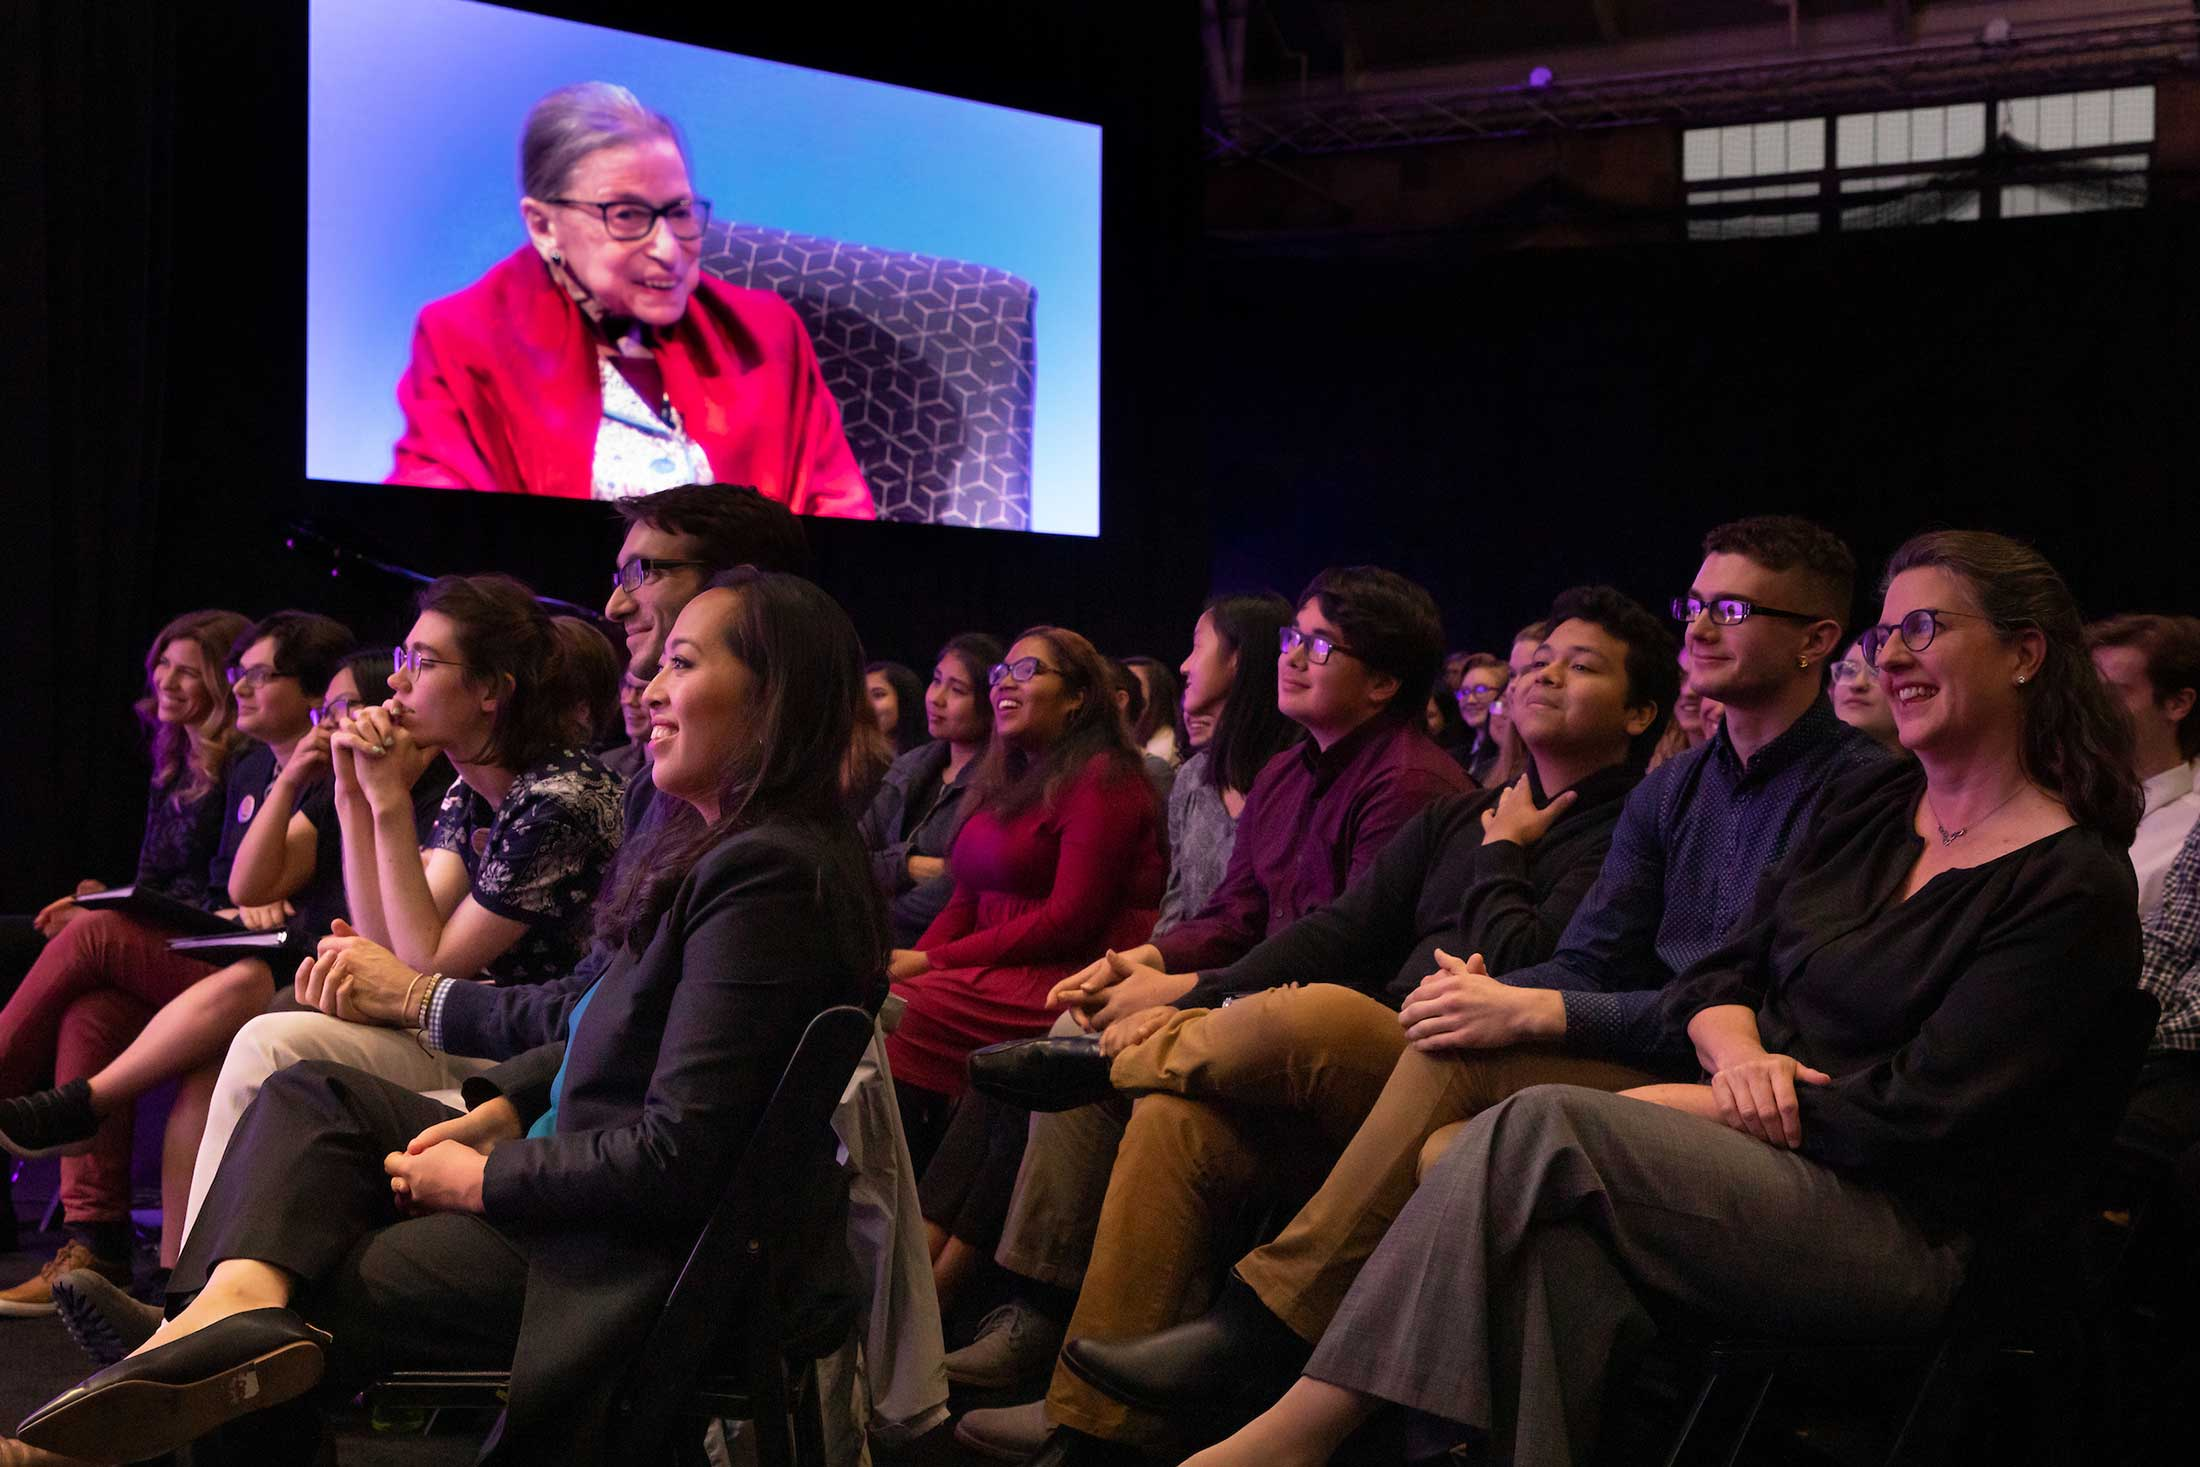 The audience listening to Justice Ginsburg who is shown on the large display screen in the venue